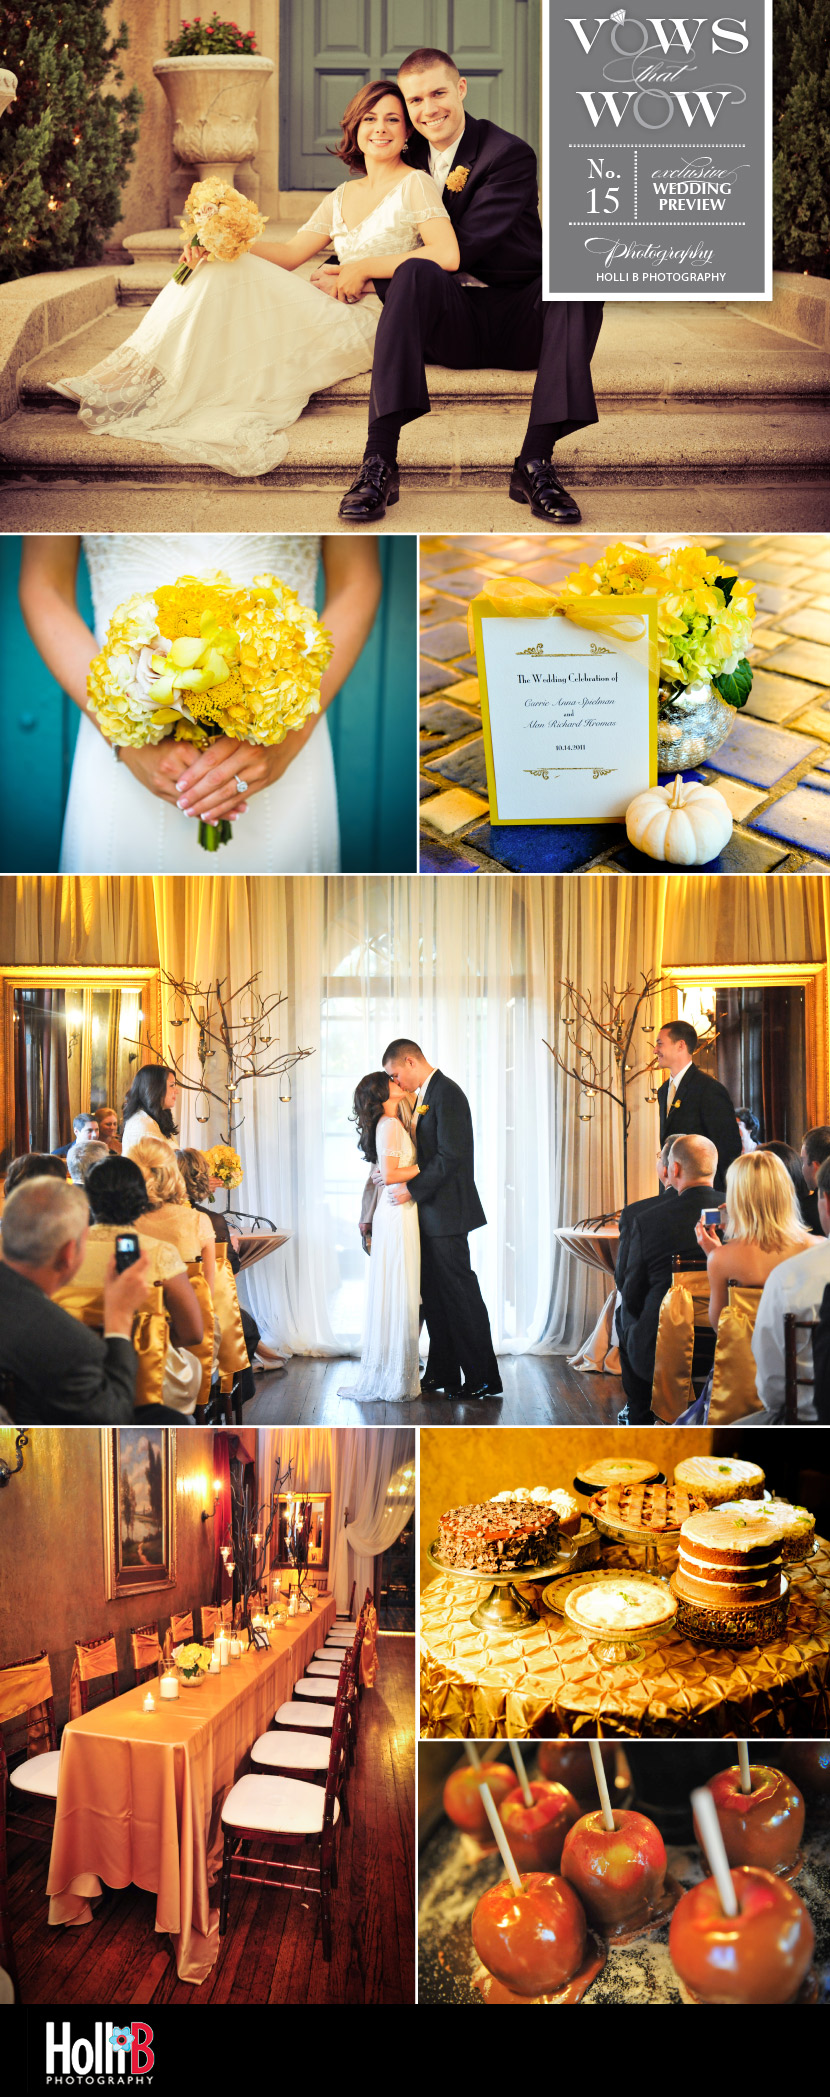 Vows That Wow_15